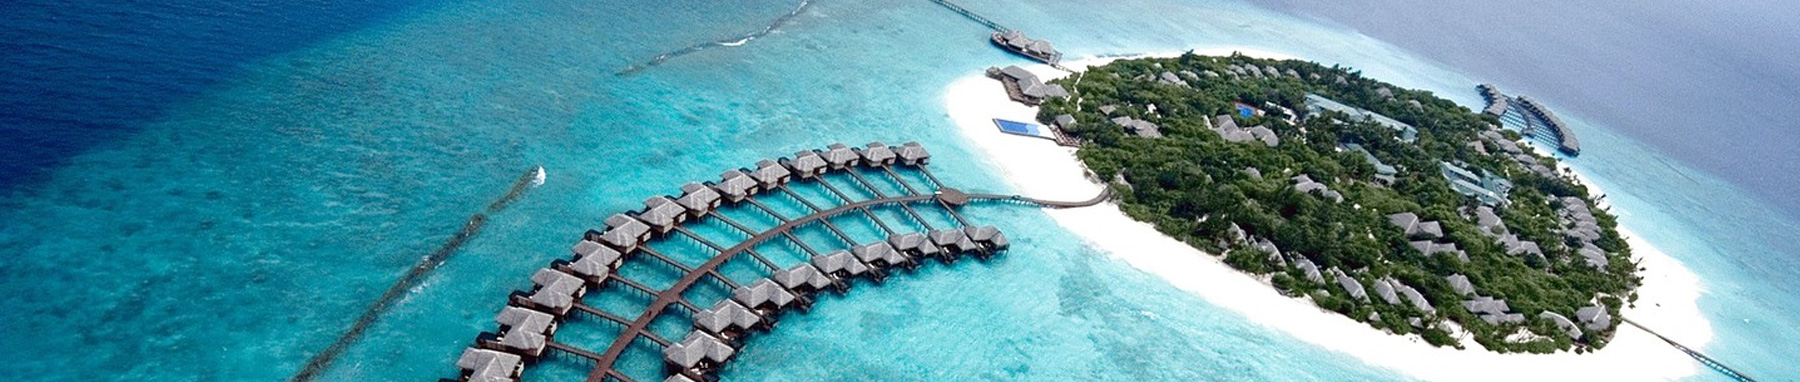 Maldives Top banner